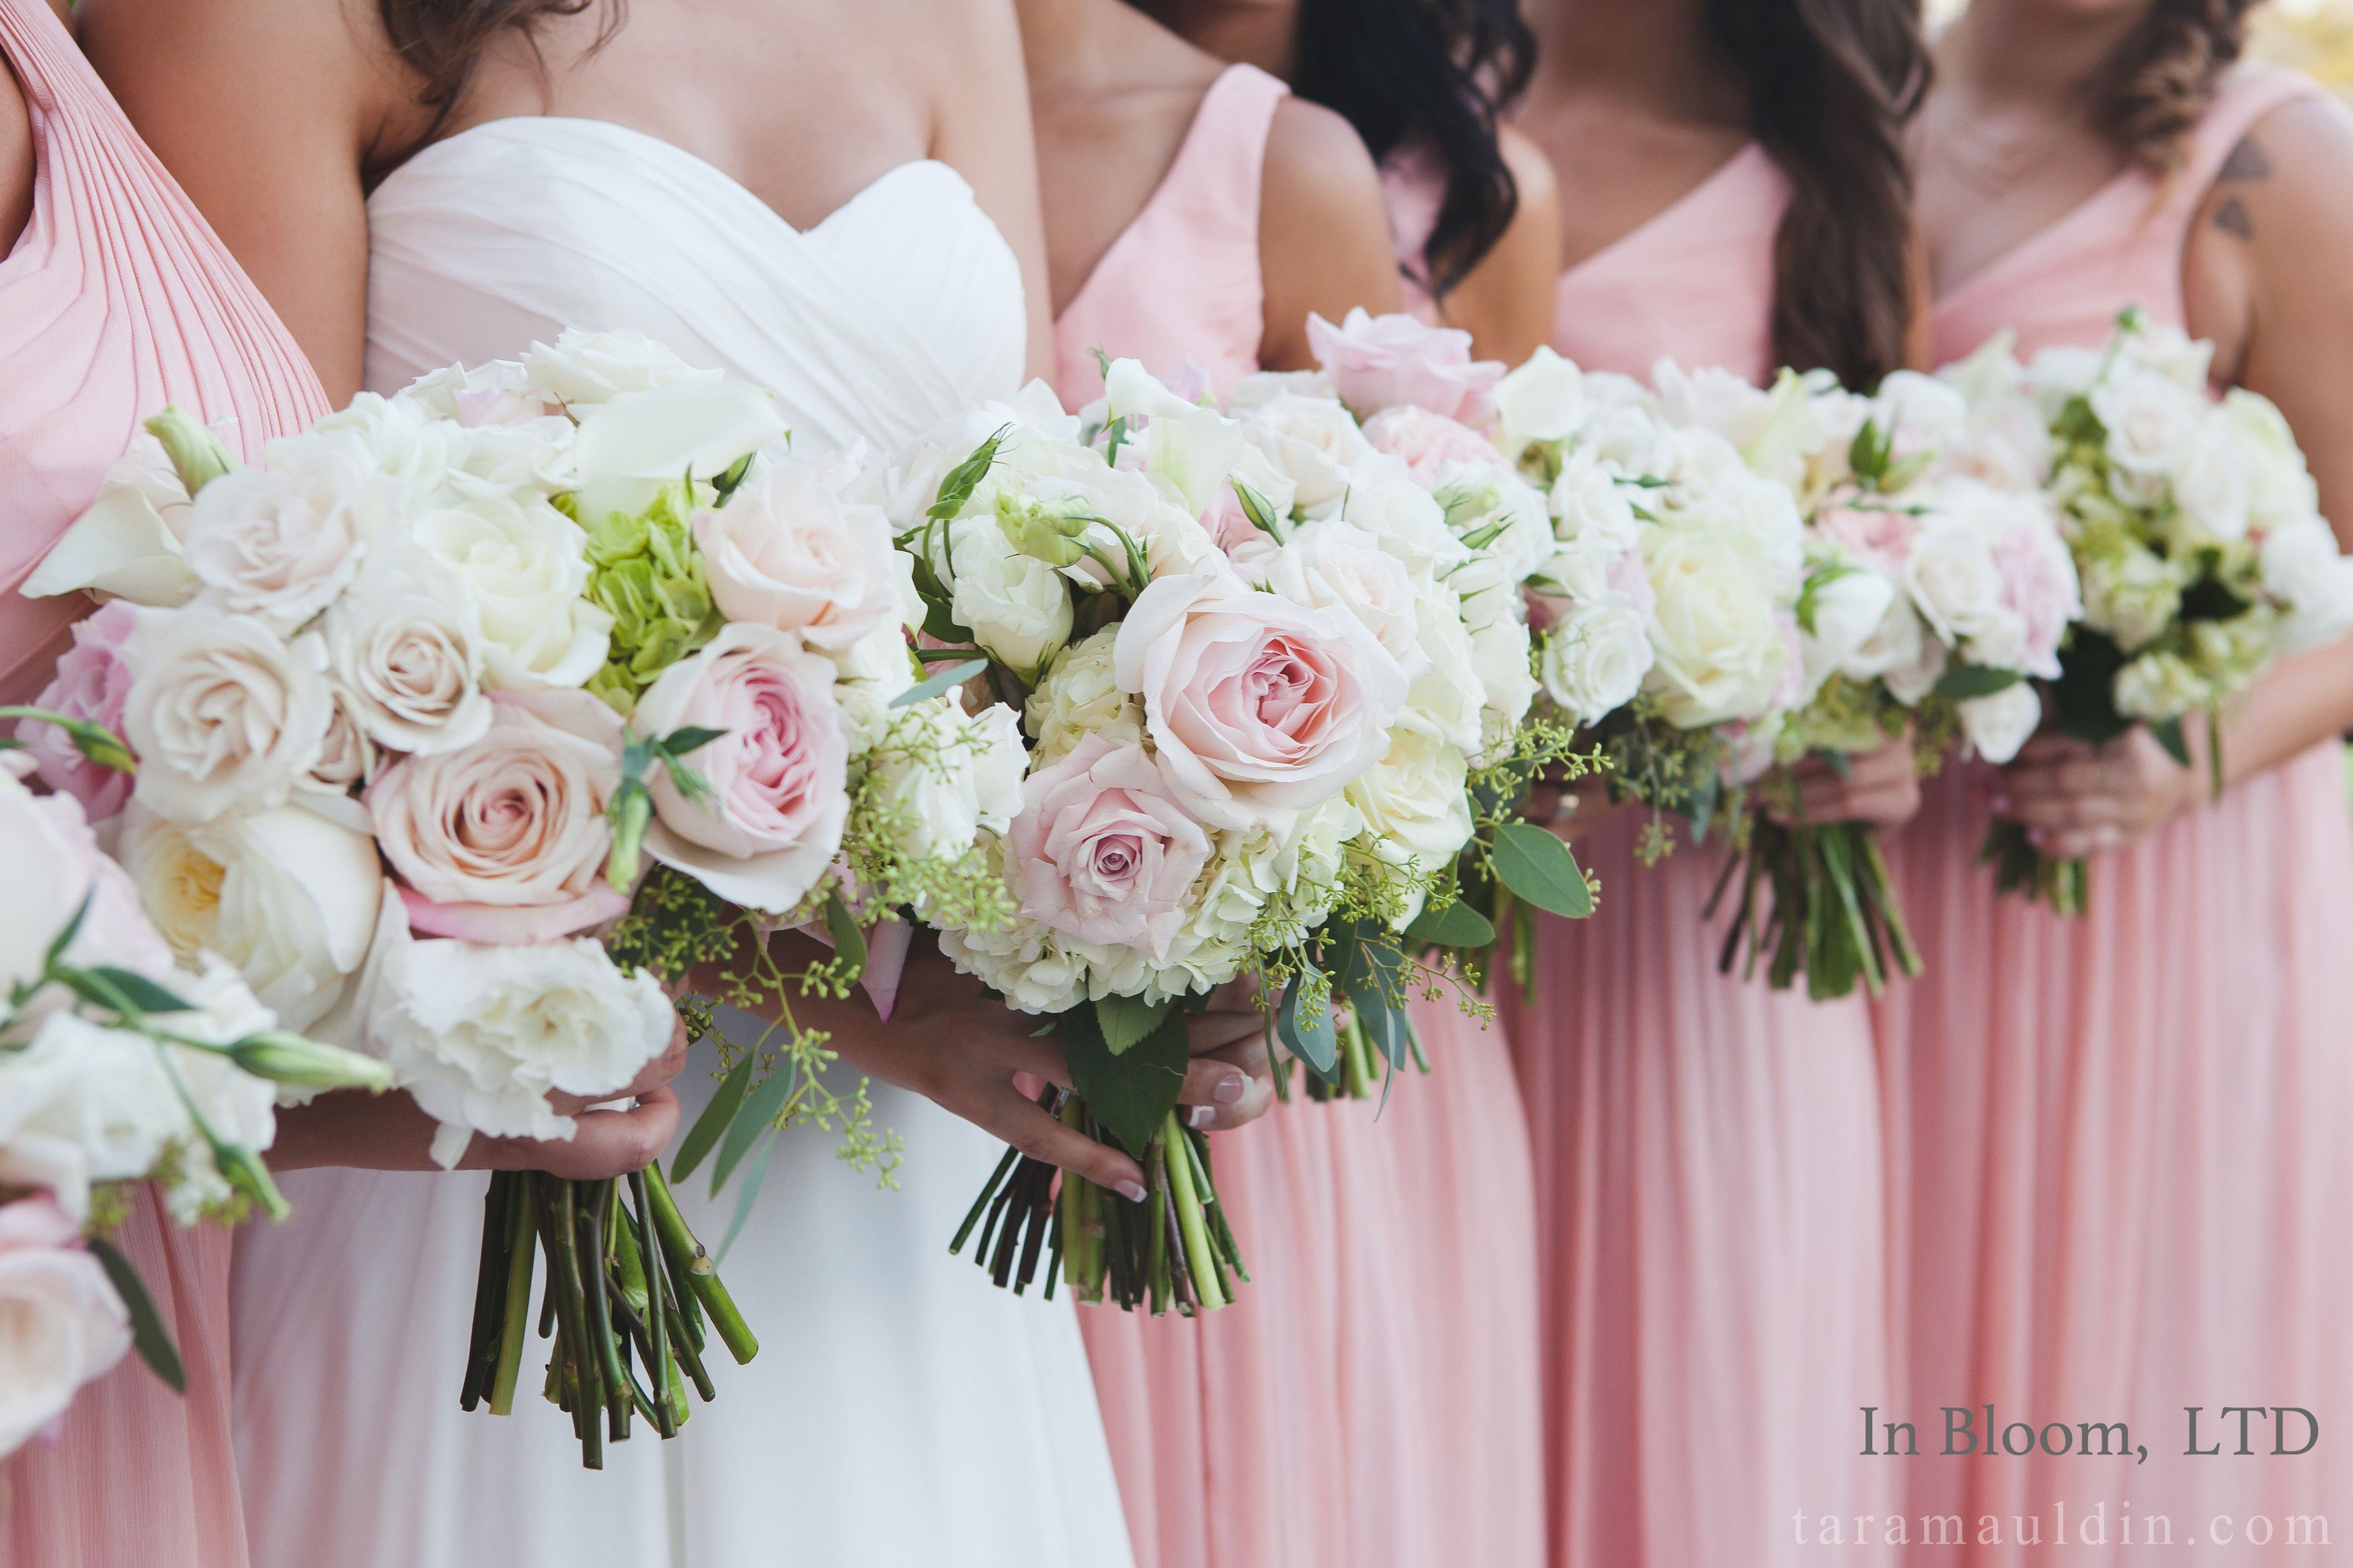 Bridemaids bouquets in Spring/Summer color